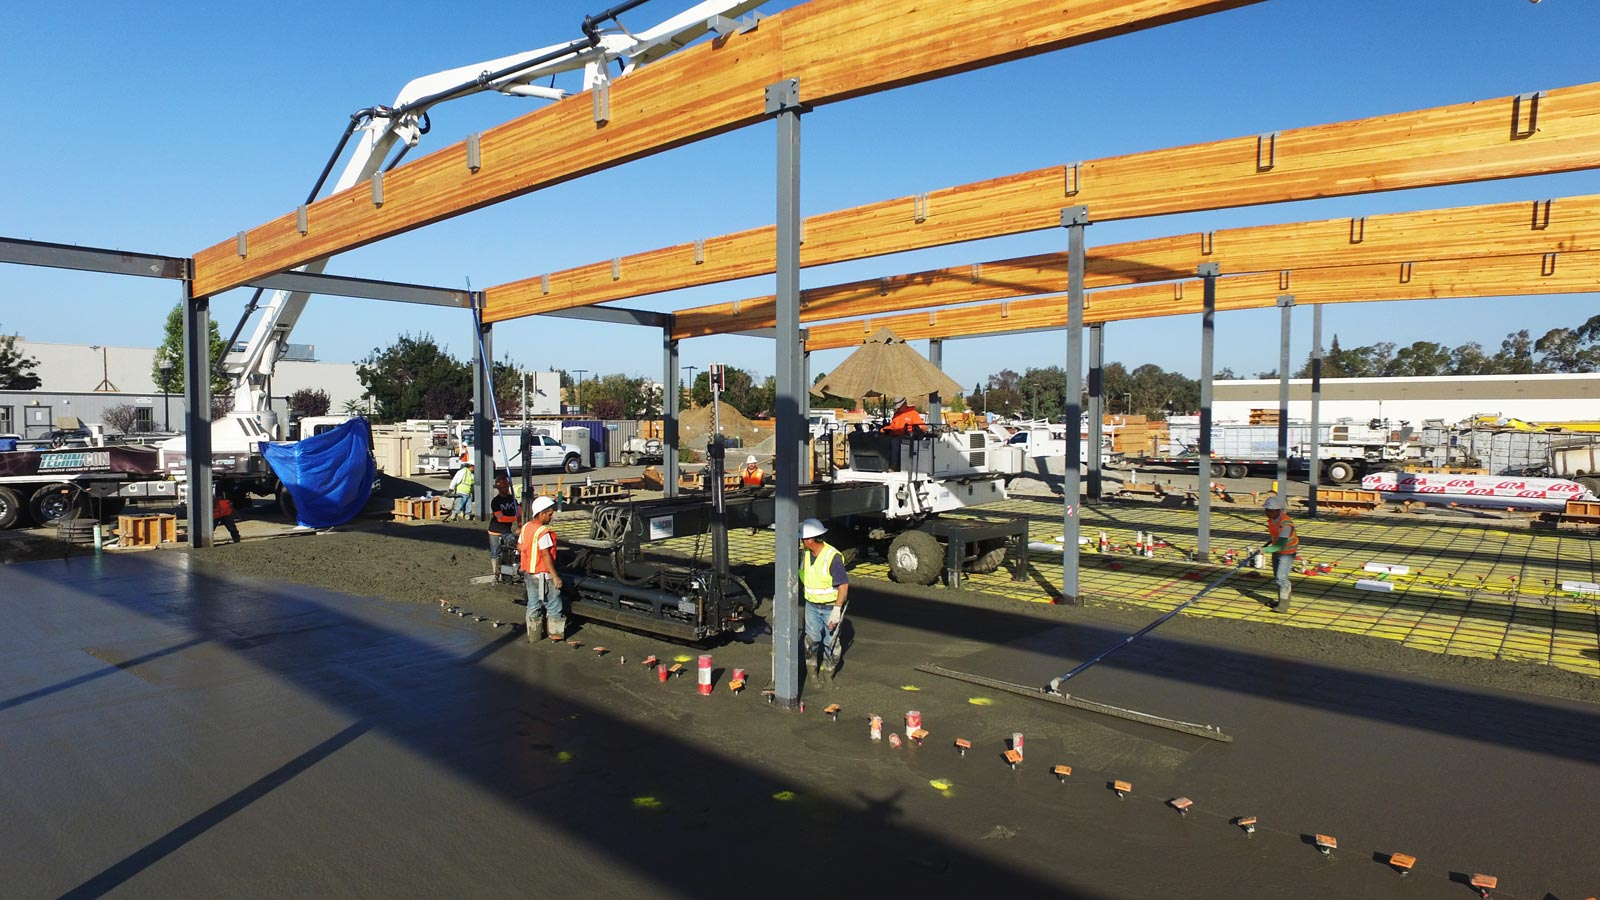 construction-concrete-california-unites-states-santa-clarita-boom-pumps-estimating-projects-planning-pumping-KCP-soff-cutting-laser-screed-copperhead-mobile-batch-plants-cement-9